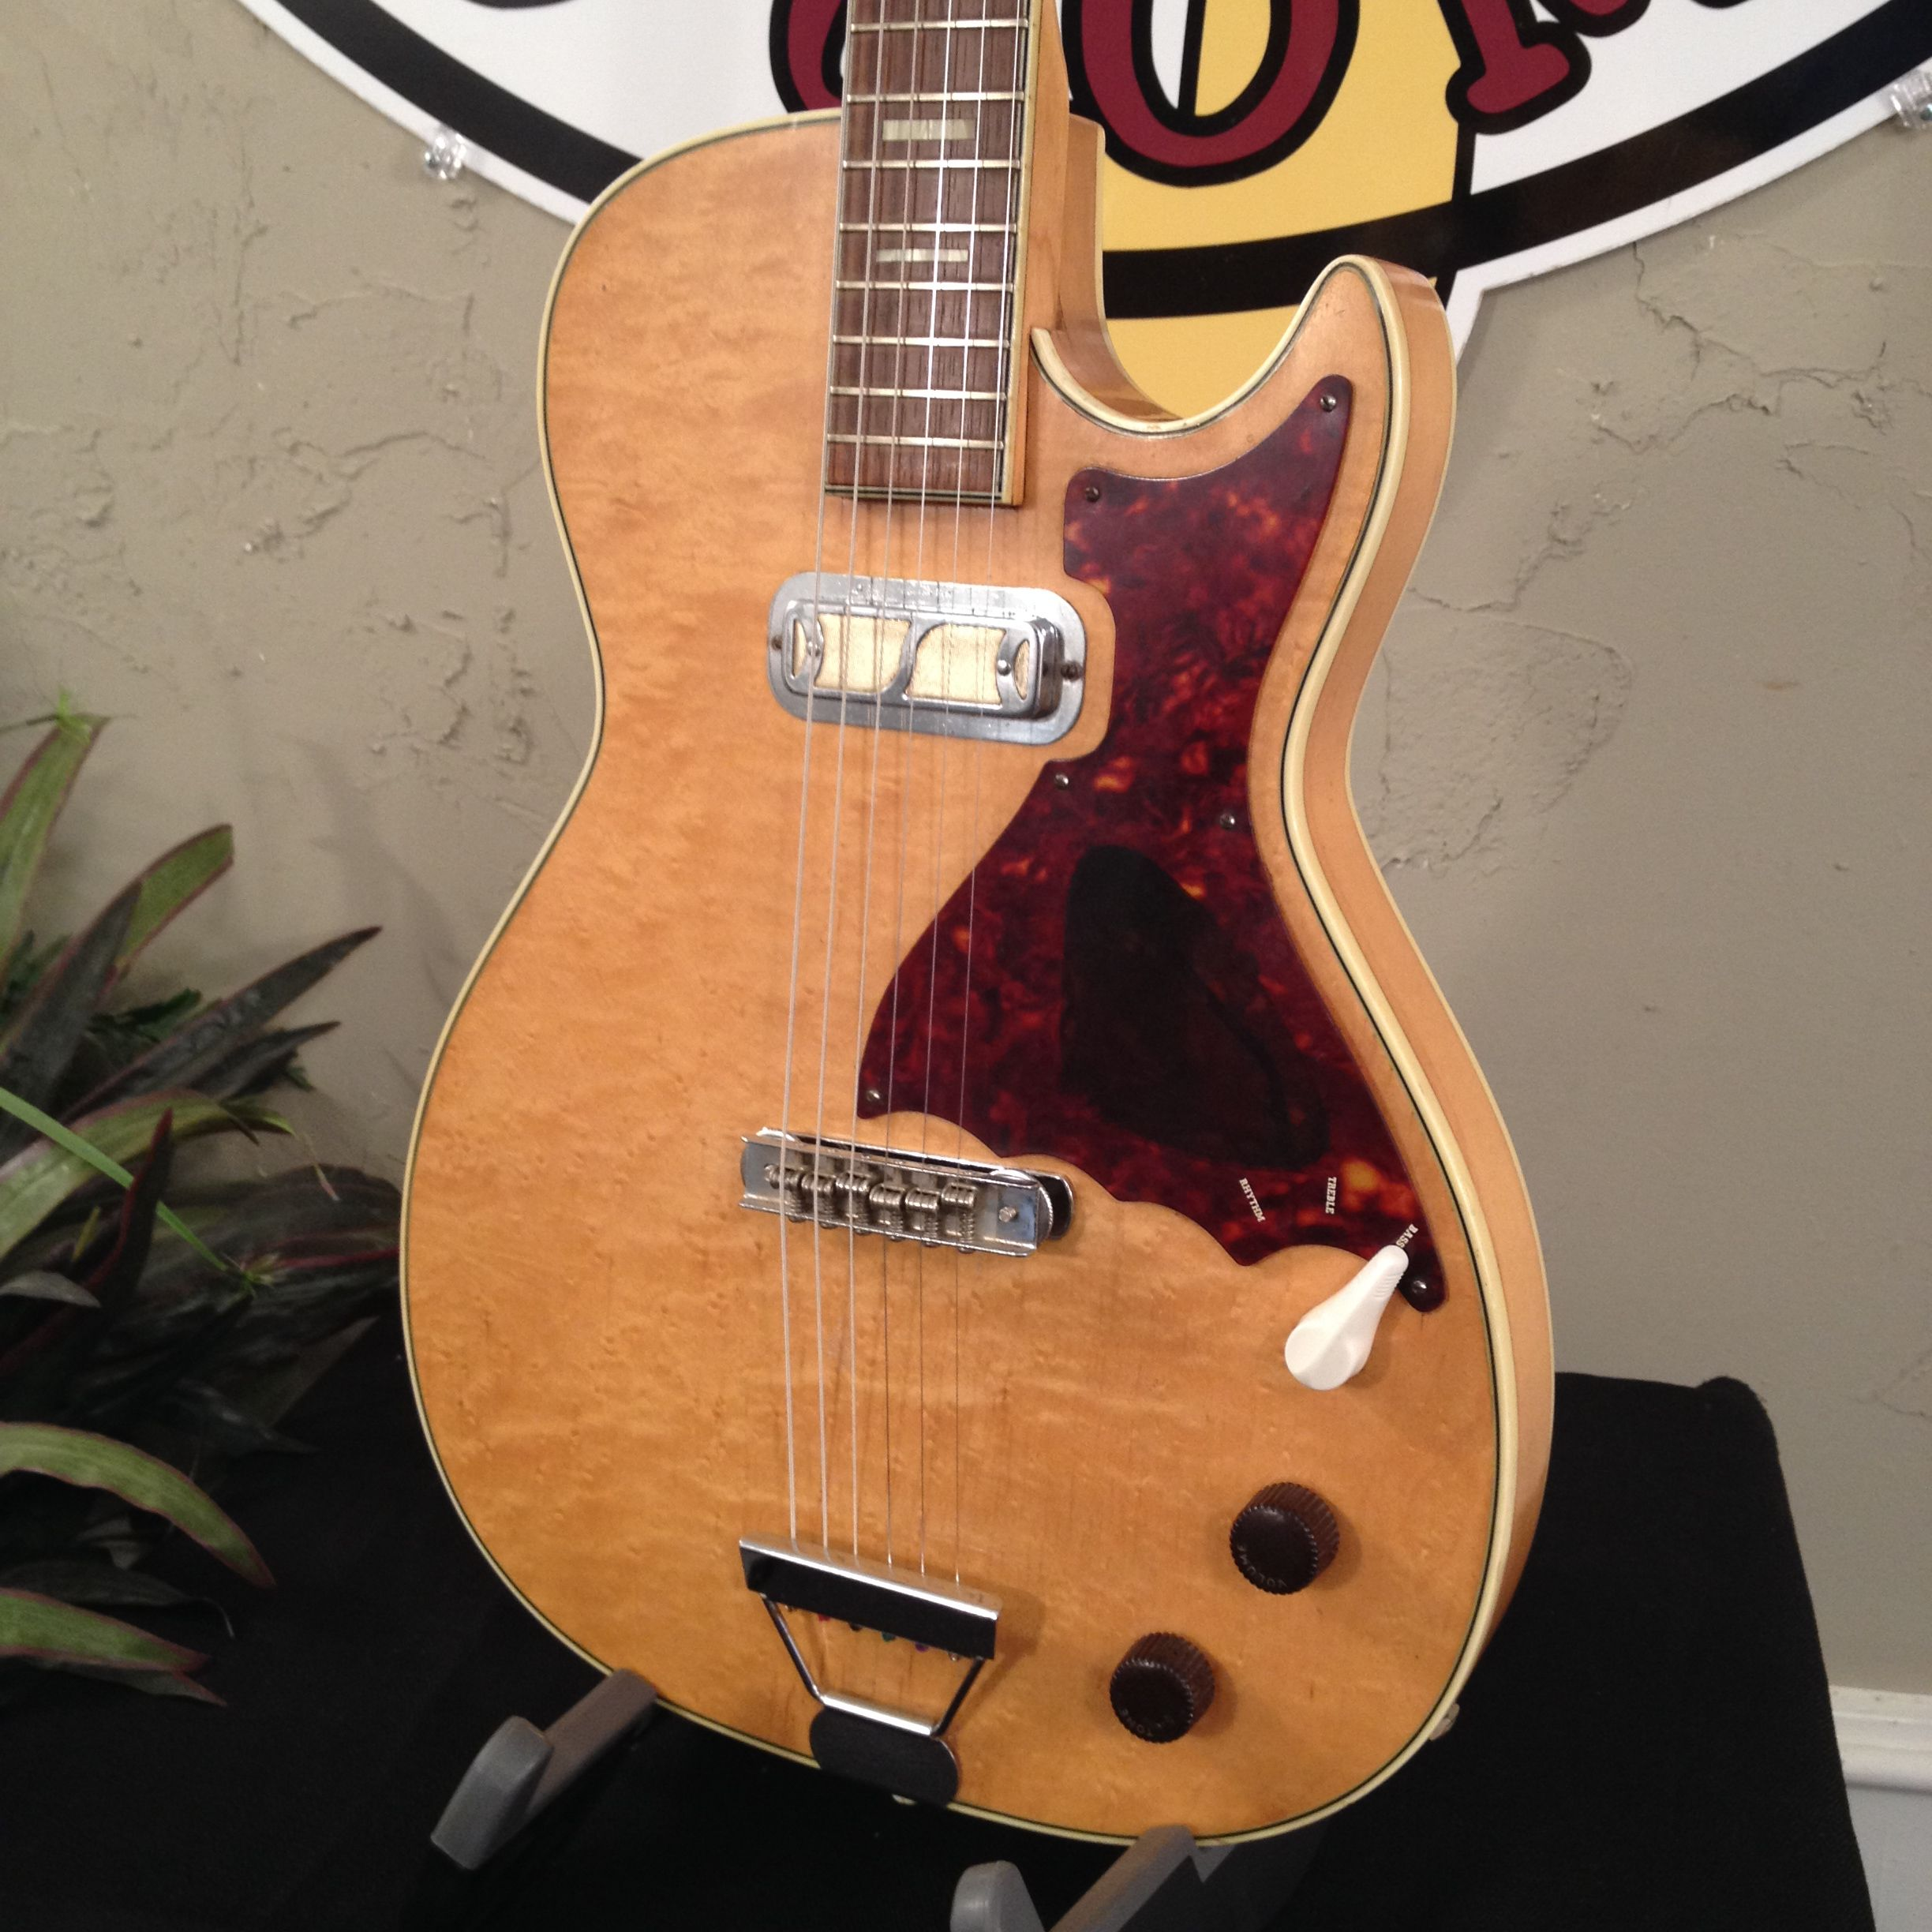 1950s 60s Harmony Stratotone H48 Mercury With A Slight Standard Wiring For 2 Pickups Guitars Improvement To The Bridge